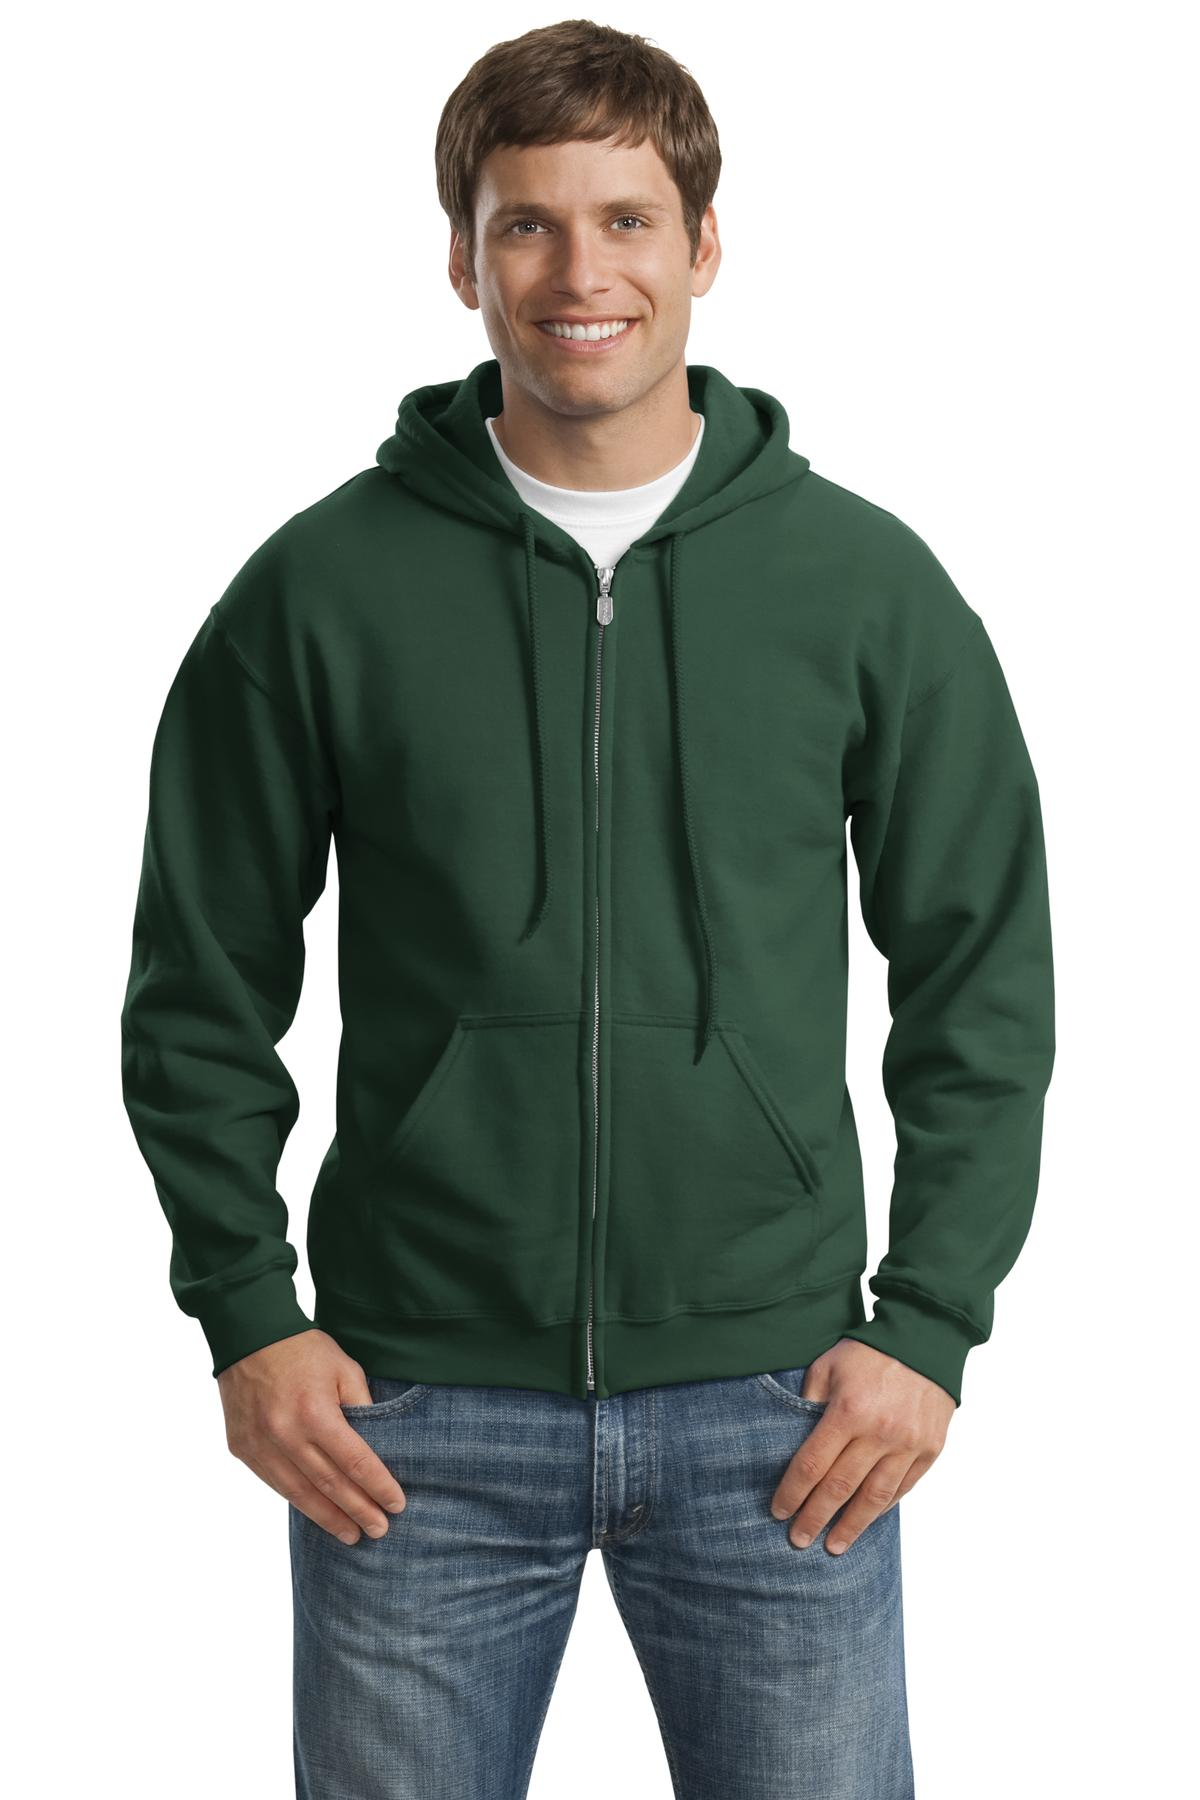 Gildan ®  - Heavy Blend™ Full-Zip Hooded Sweatshirt. 18600 - Forest Green